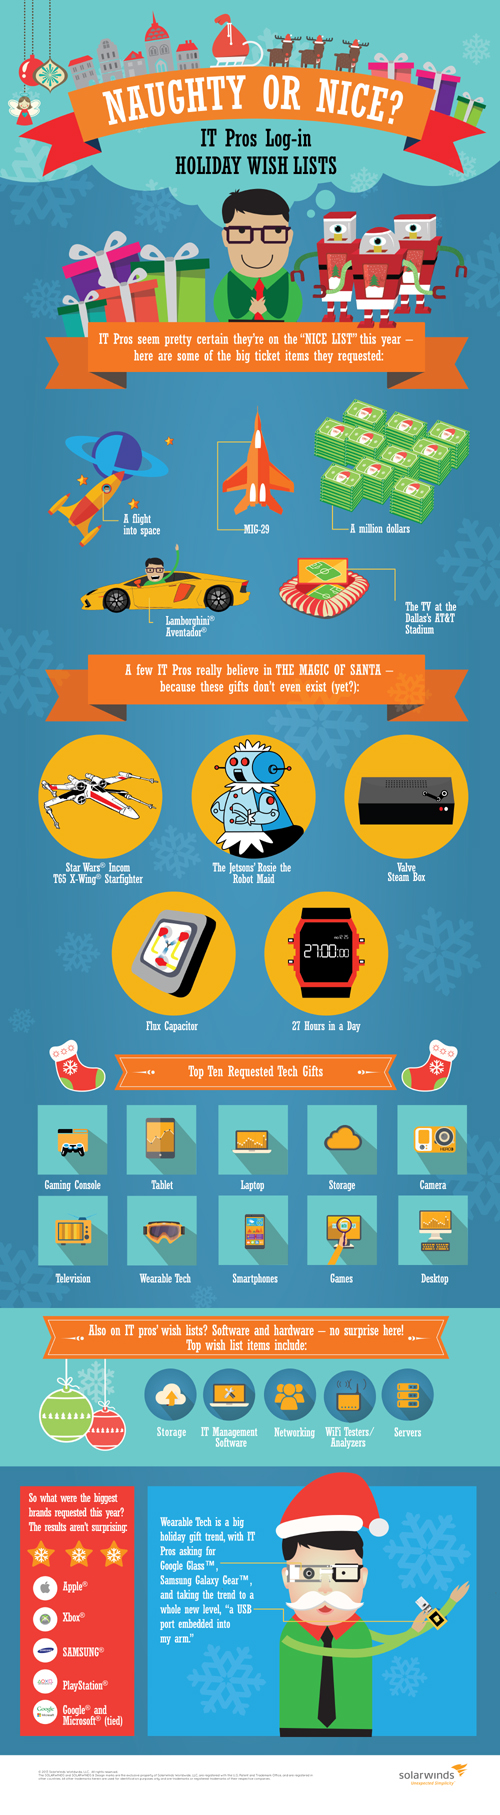 Solarwinds Dear Santa final Infographic: What IT Pros Want for Christmas This Year